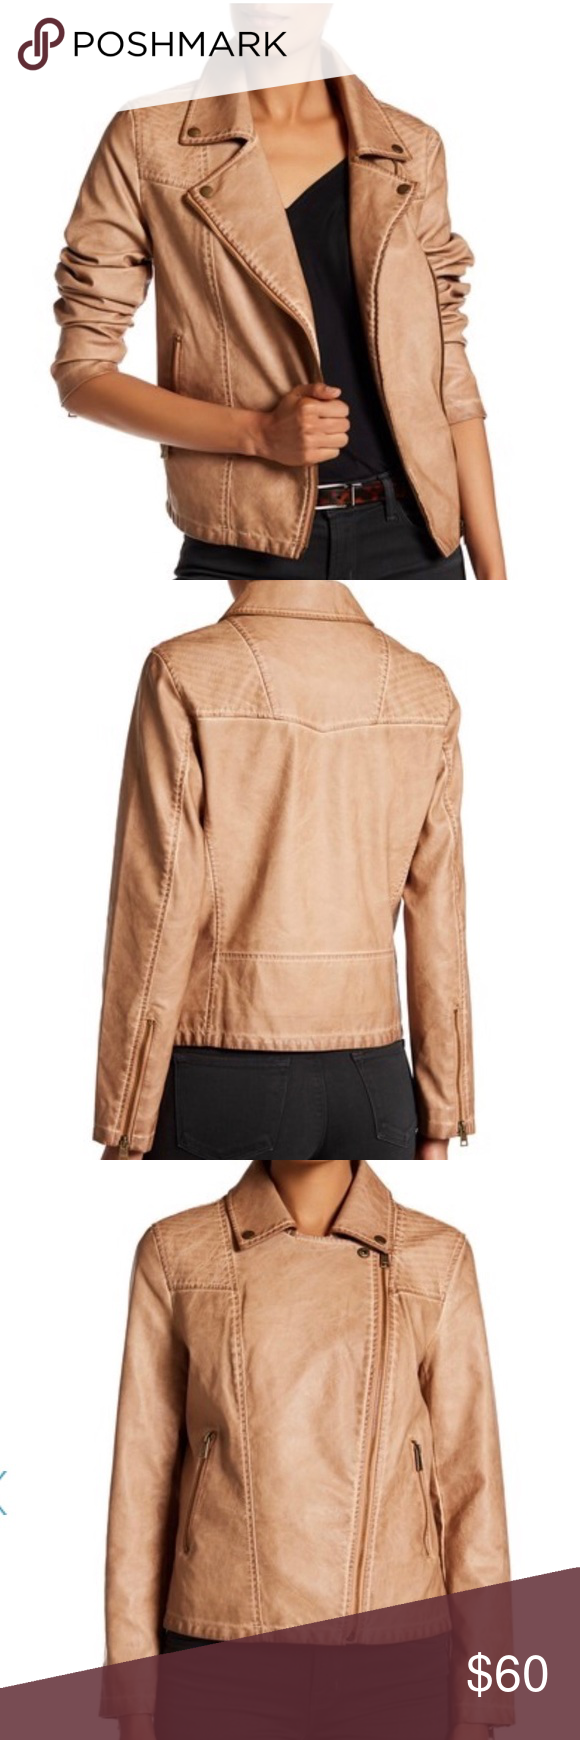 NWT Nordstrom's Faux Leather Jacket NWT (With images